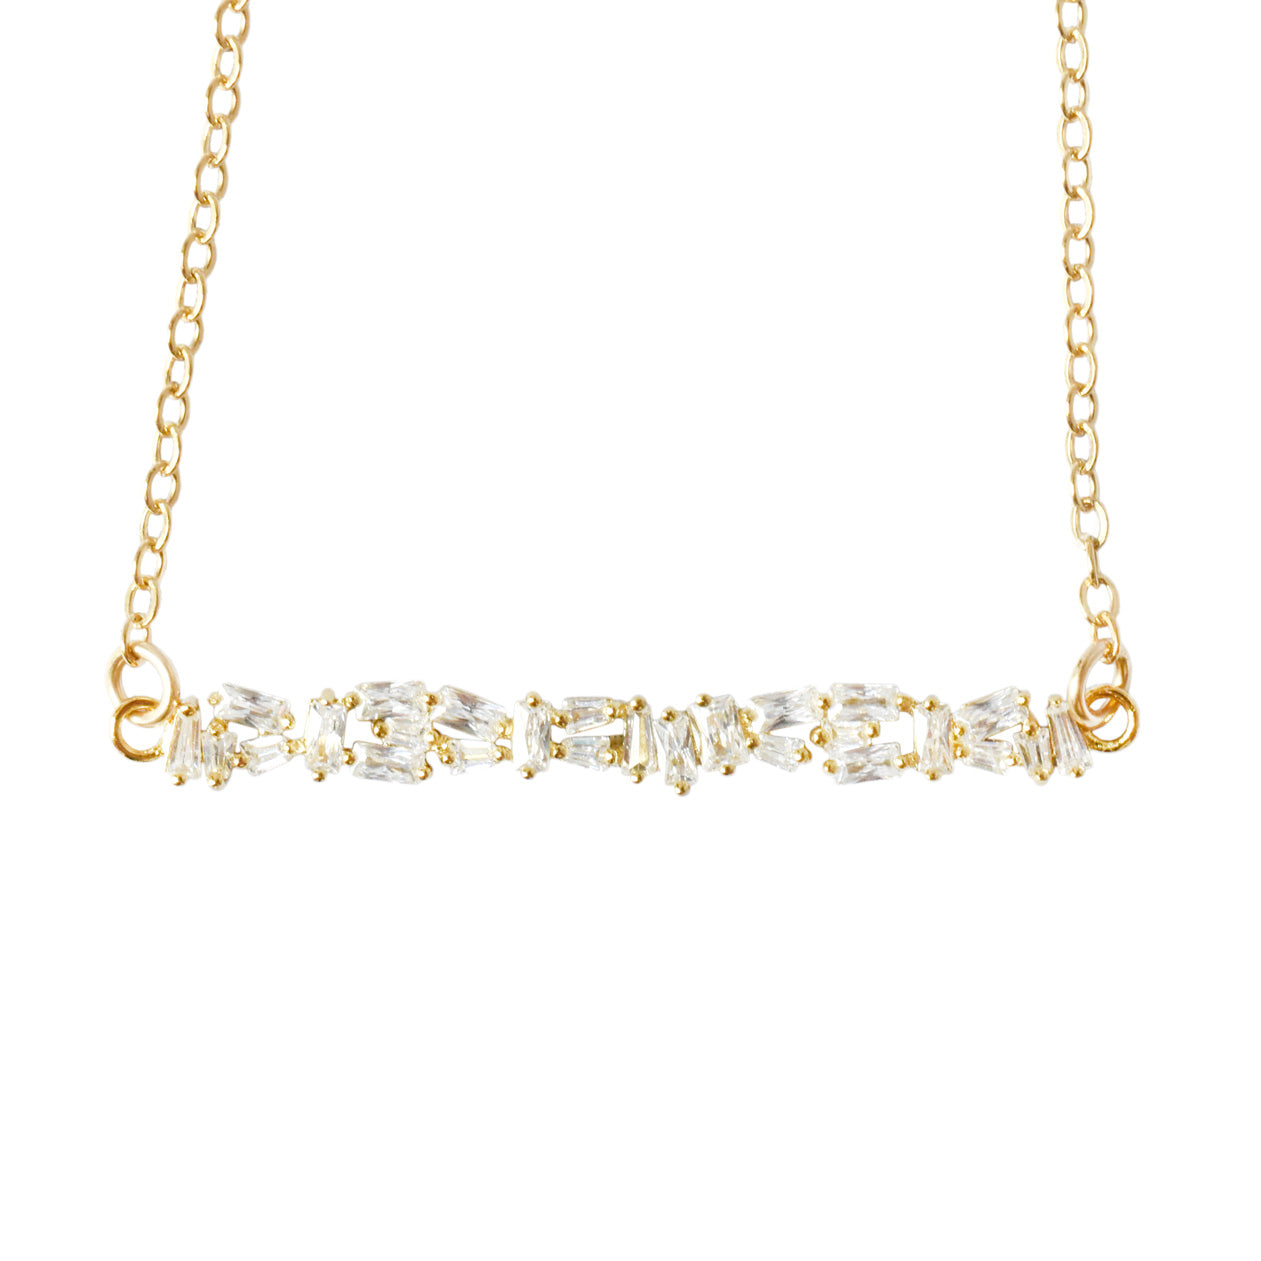 ALTA CRYSTAL BAGUETTE BAR NECKLACE